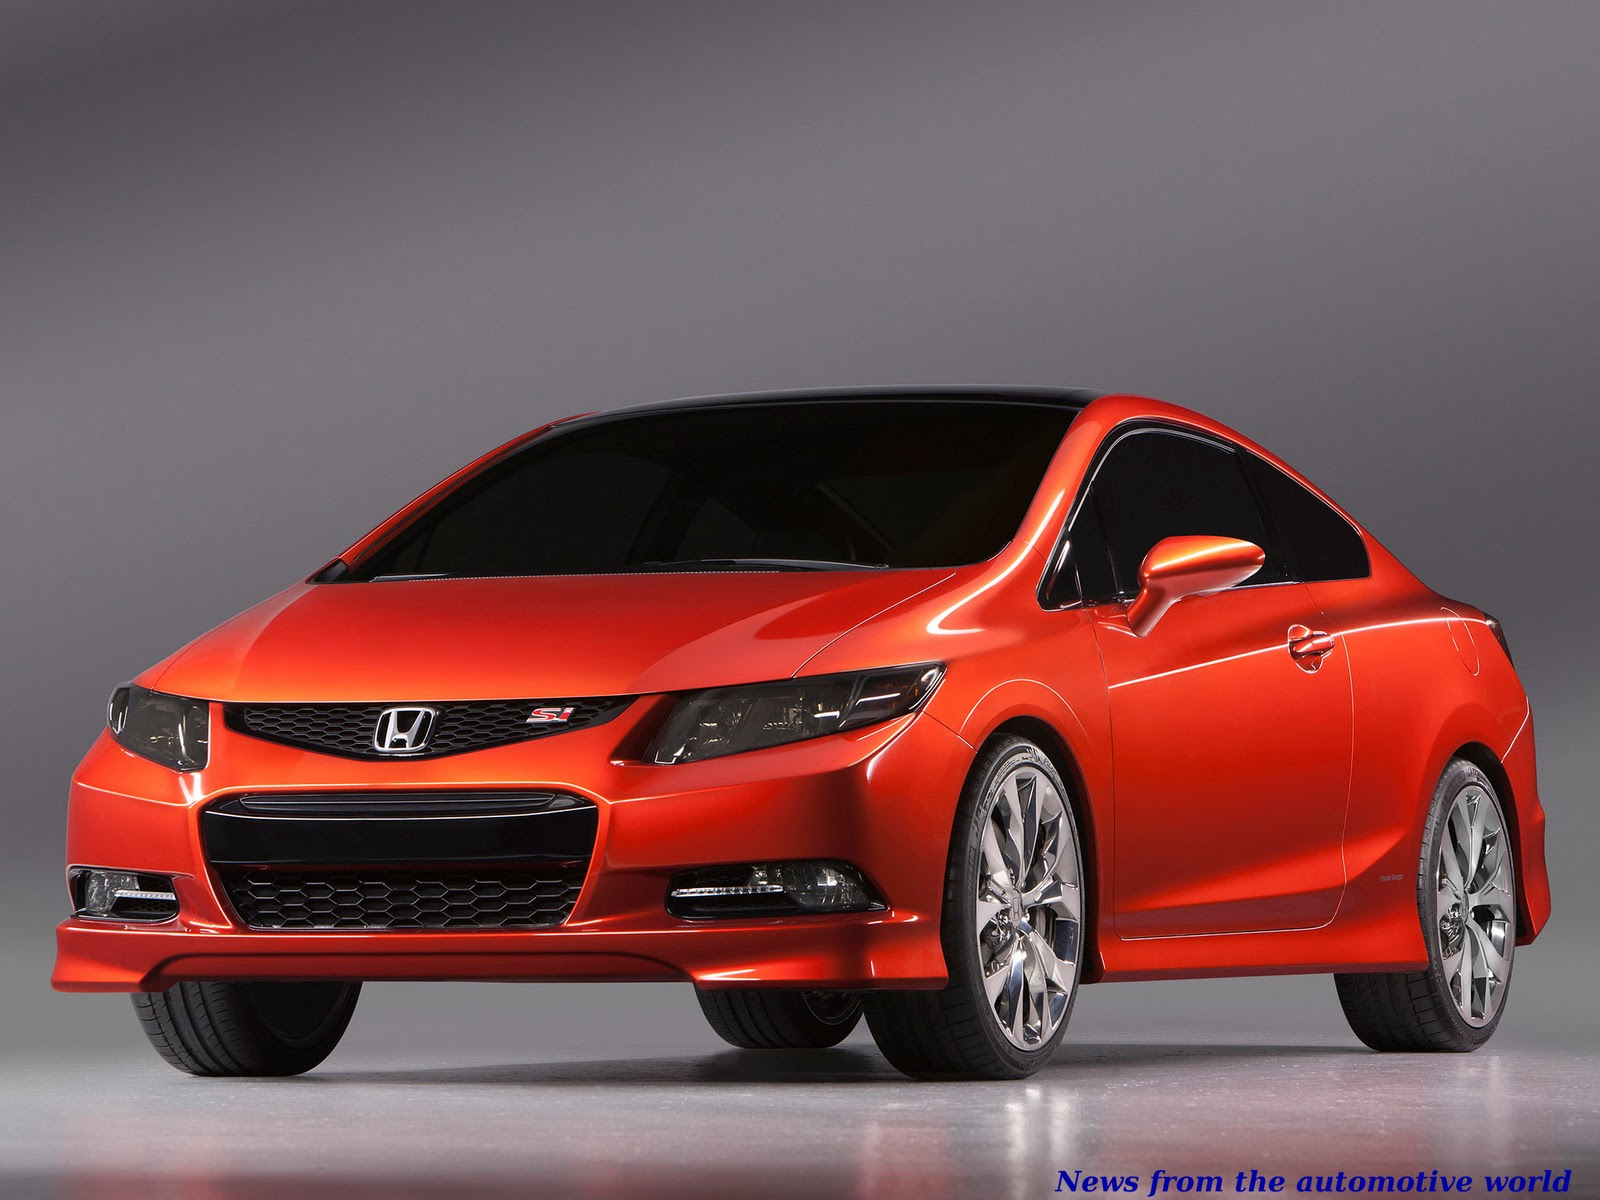 2011 honda civic si news from the automotive world. Black Bedroom Furniture Sets. Home Design Ideas